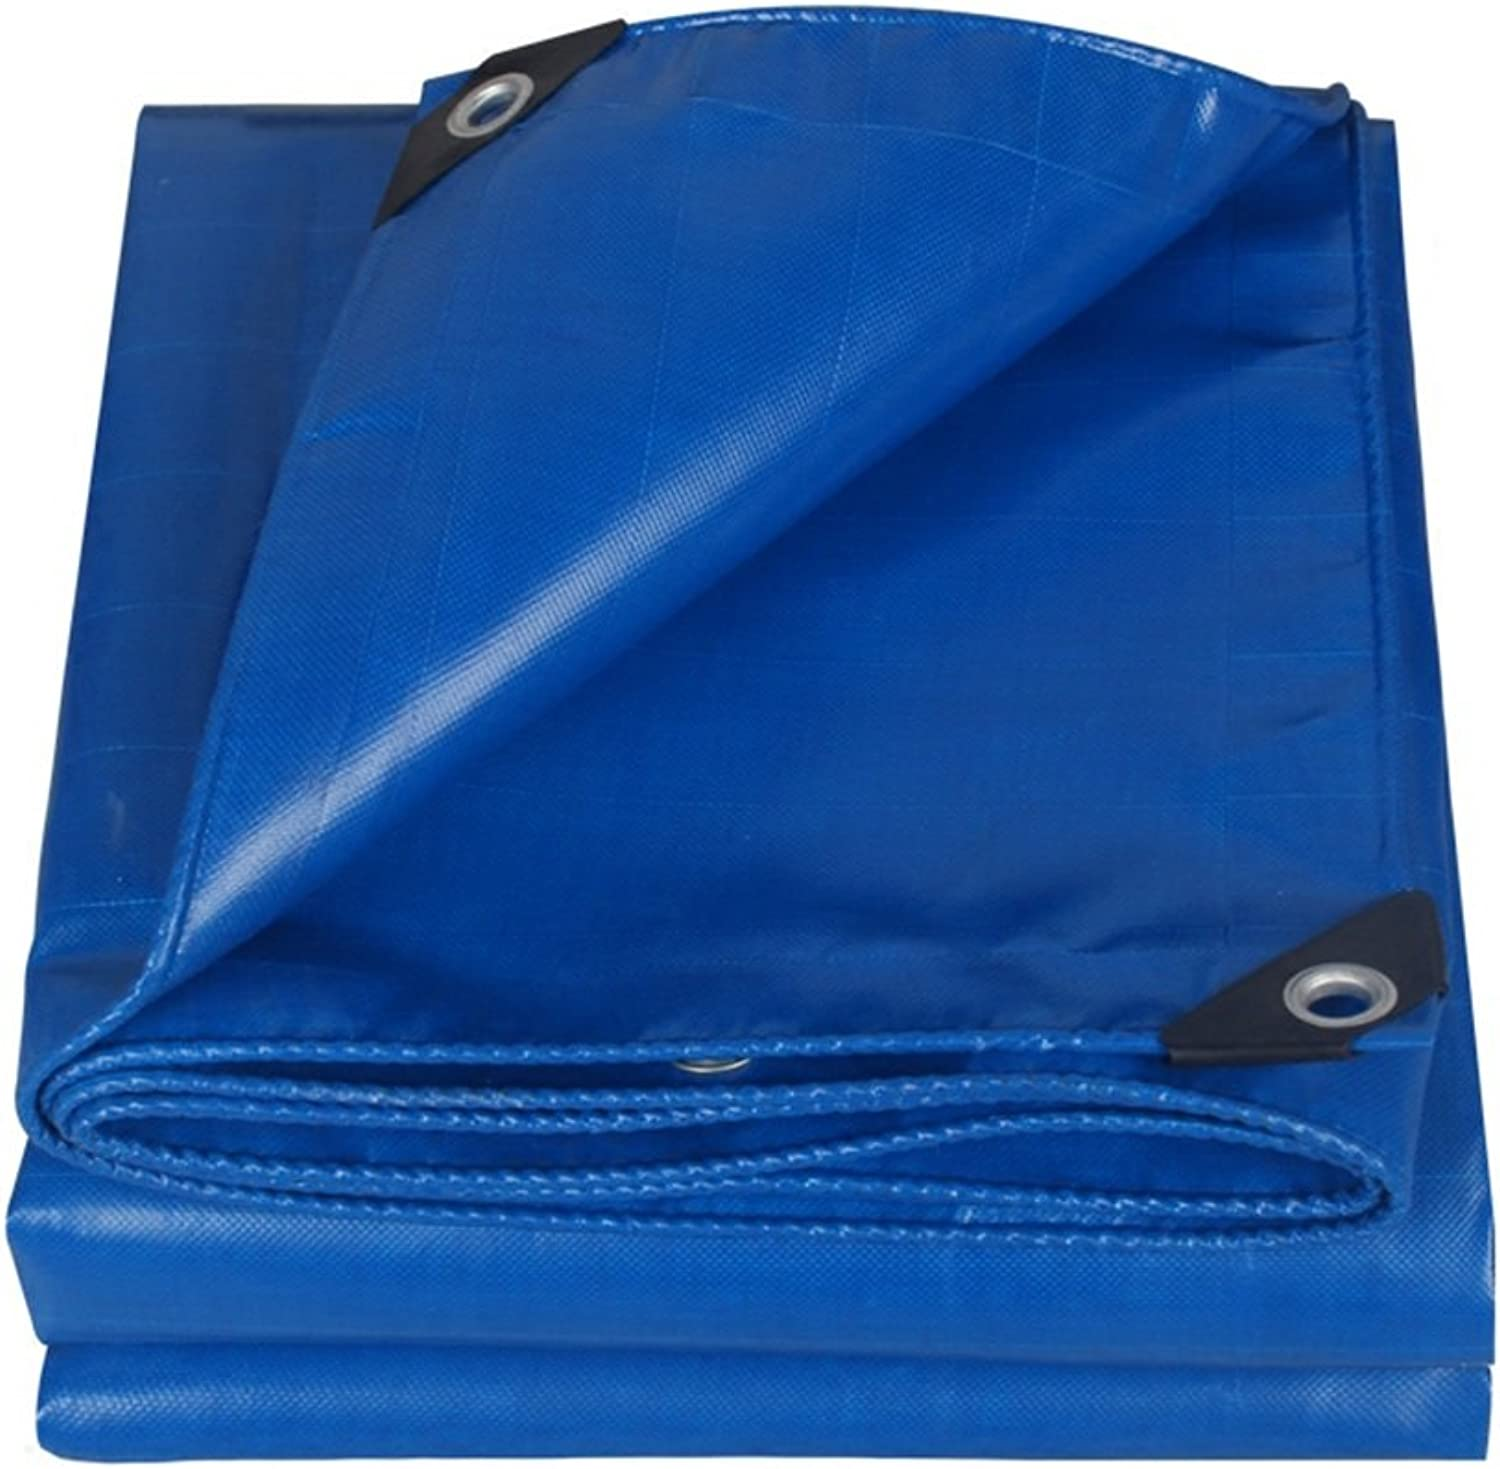 ZEMIN Tarpaulin Waterproof Sunscreen Tent Sheet Roof AntiAging Polyester, blueee, 500G M2, 9 Sizes Available